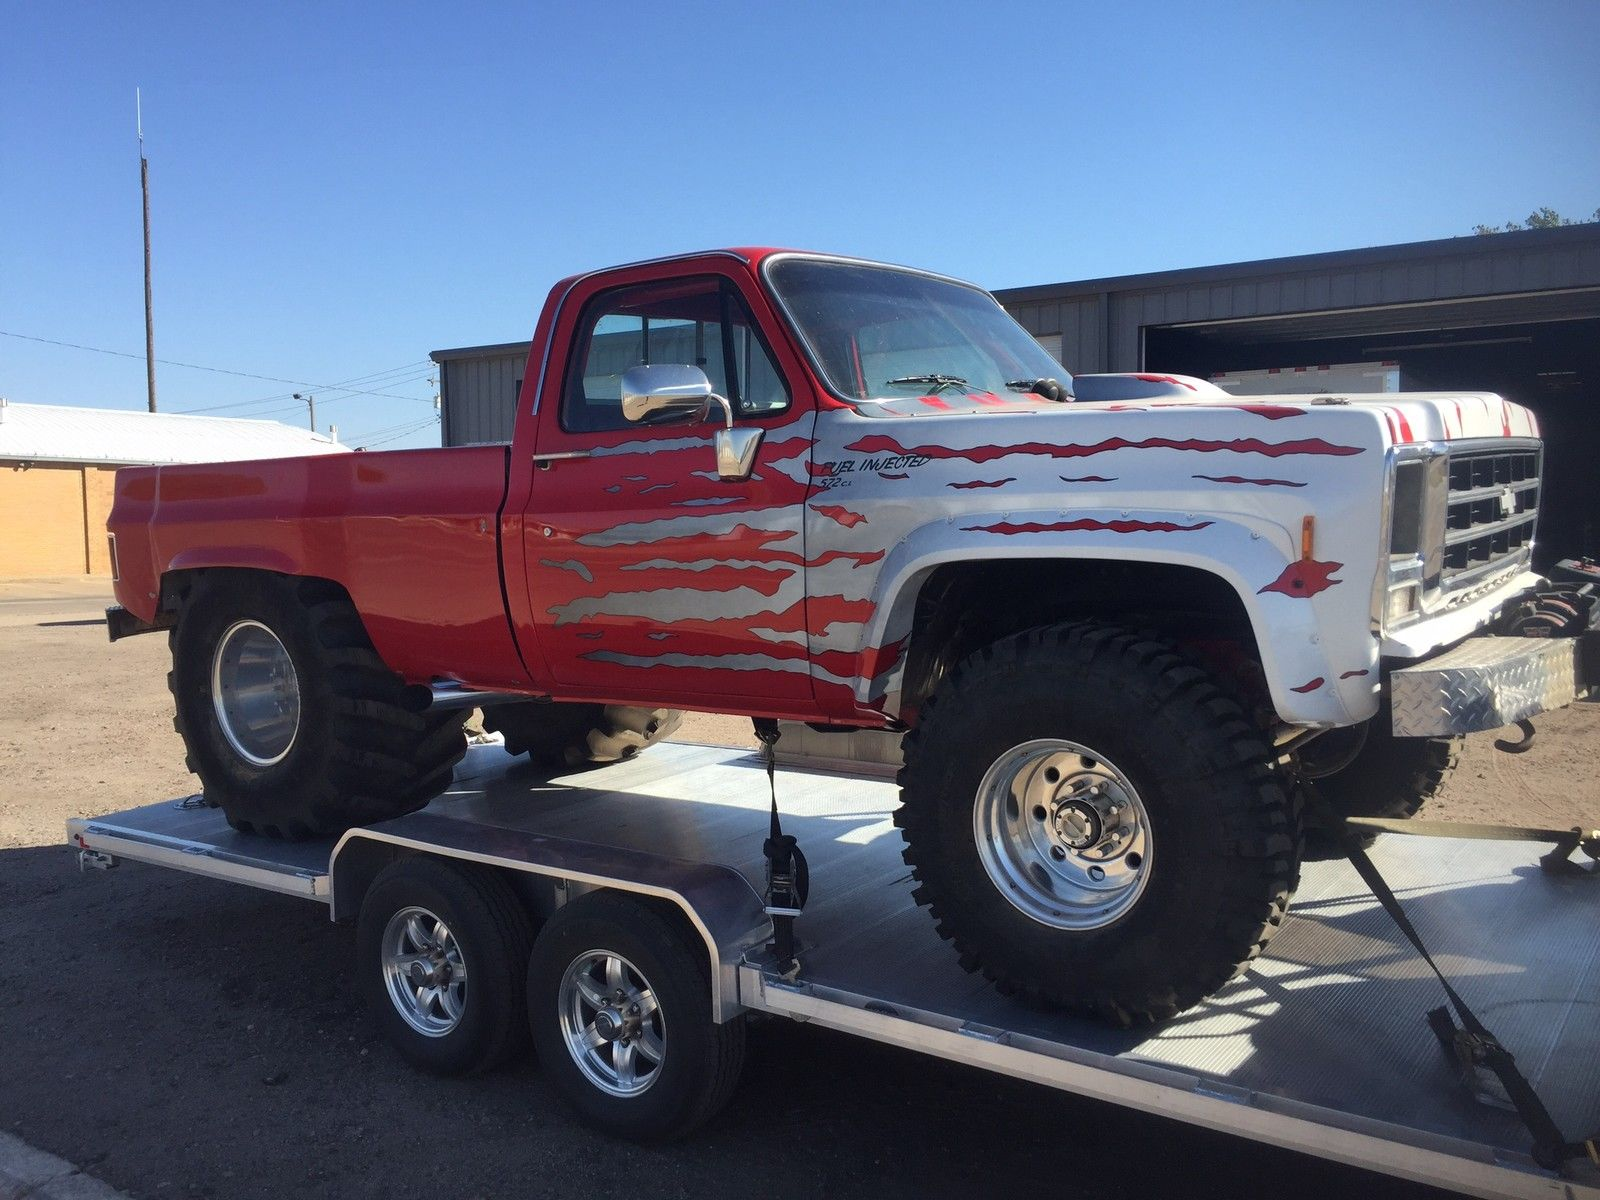 Lifted Trucks For Sale Near Me >> BangShift.com The Truck Of All Trucks, QUAGMIRE IS FOR SALE!!! Buy This Epic Icon And Wheel It ...